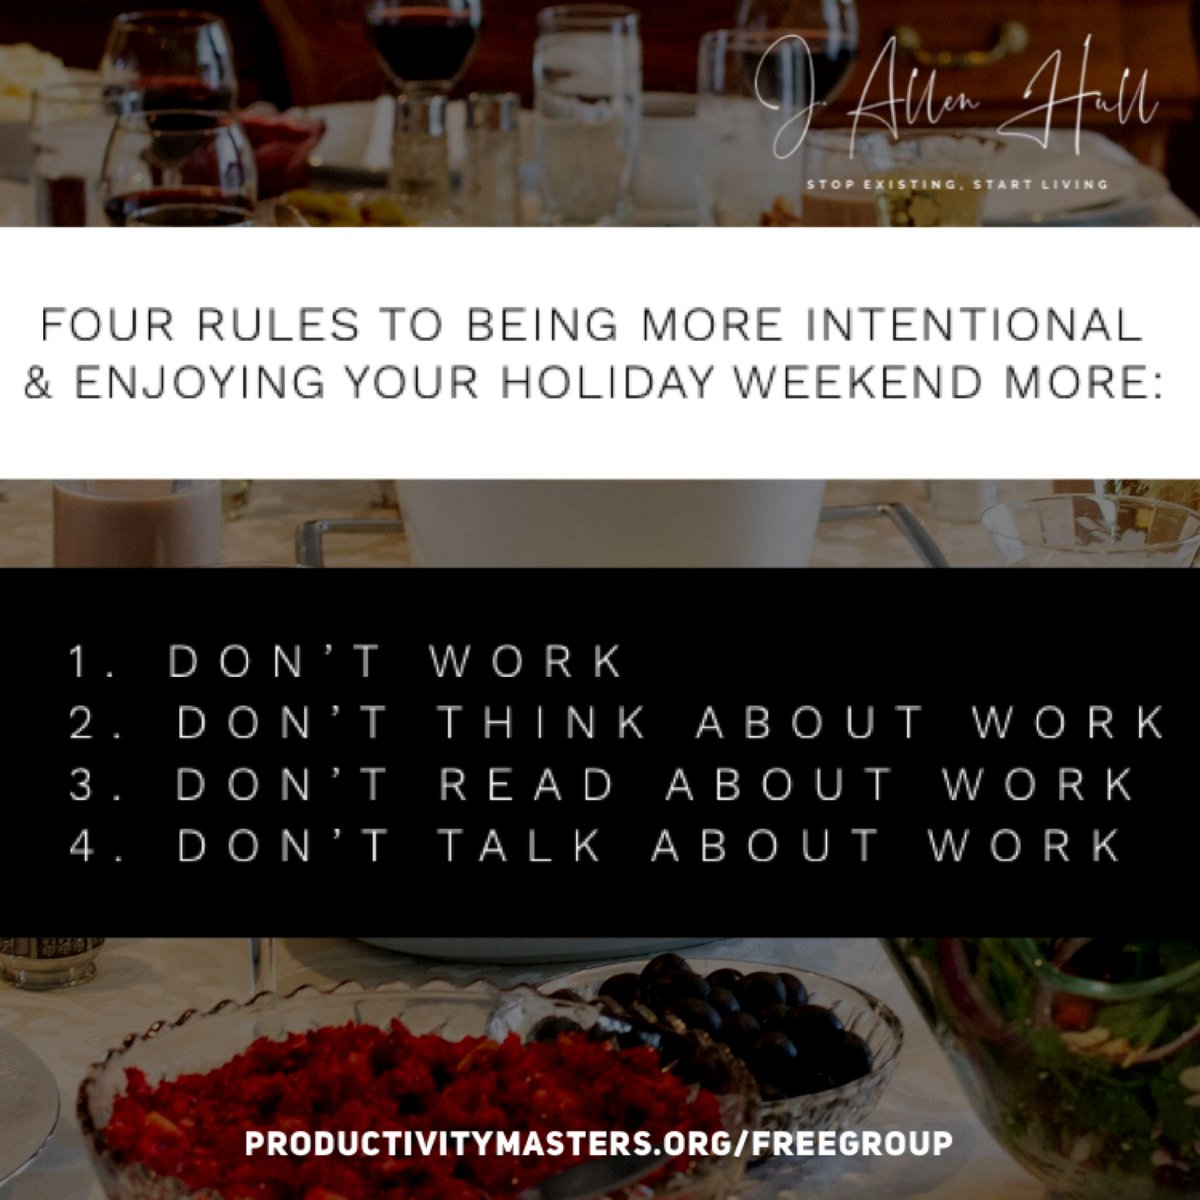 Be more intentional with your time off to enjoy it more. Your mind especially needs a change for full enjoyment and recovery. Have a happy Thanksgiving! #HappyThanksgiving #IntentionalLiving #StopExisitingStartLiving #TakeABreak #ChangeItUp